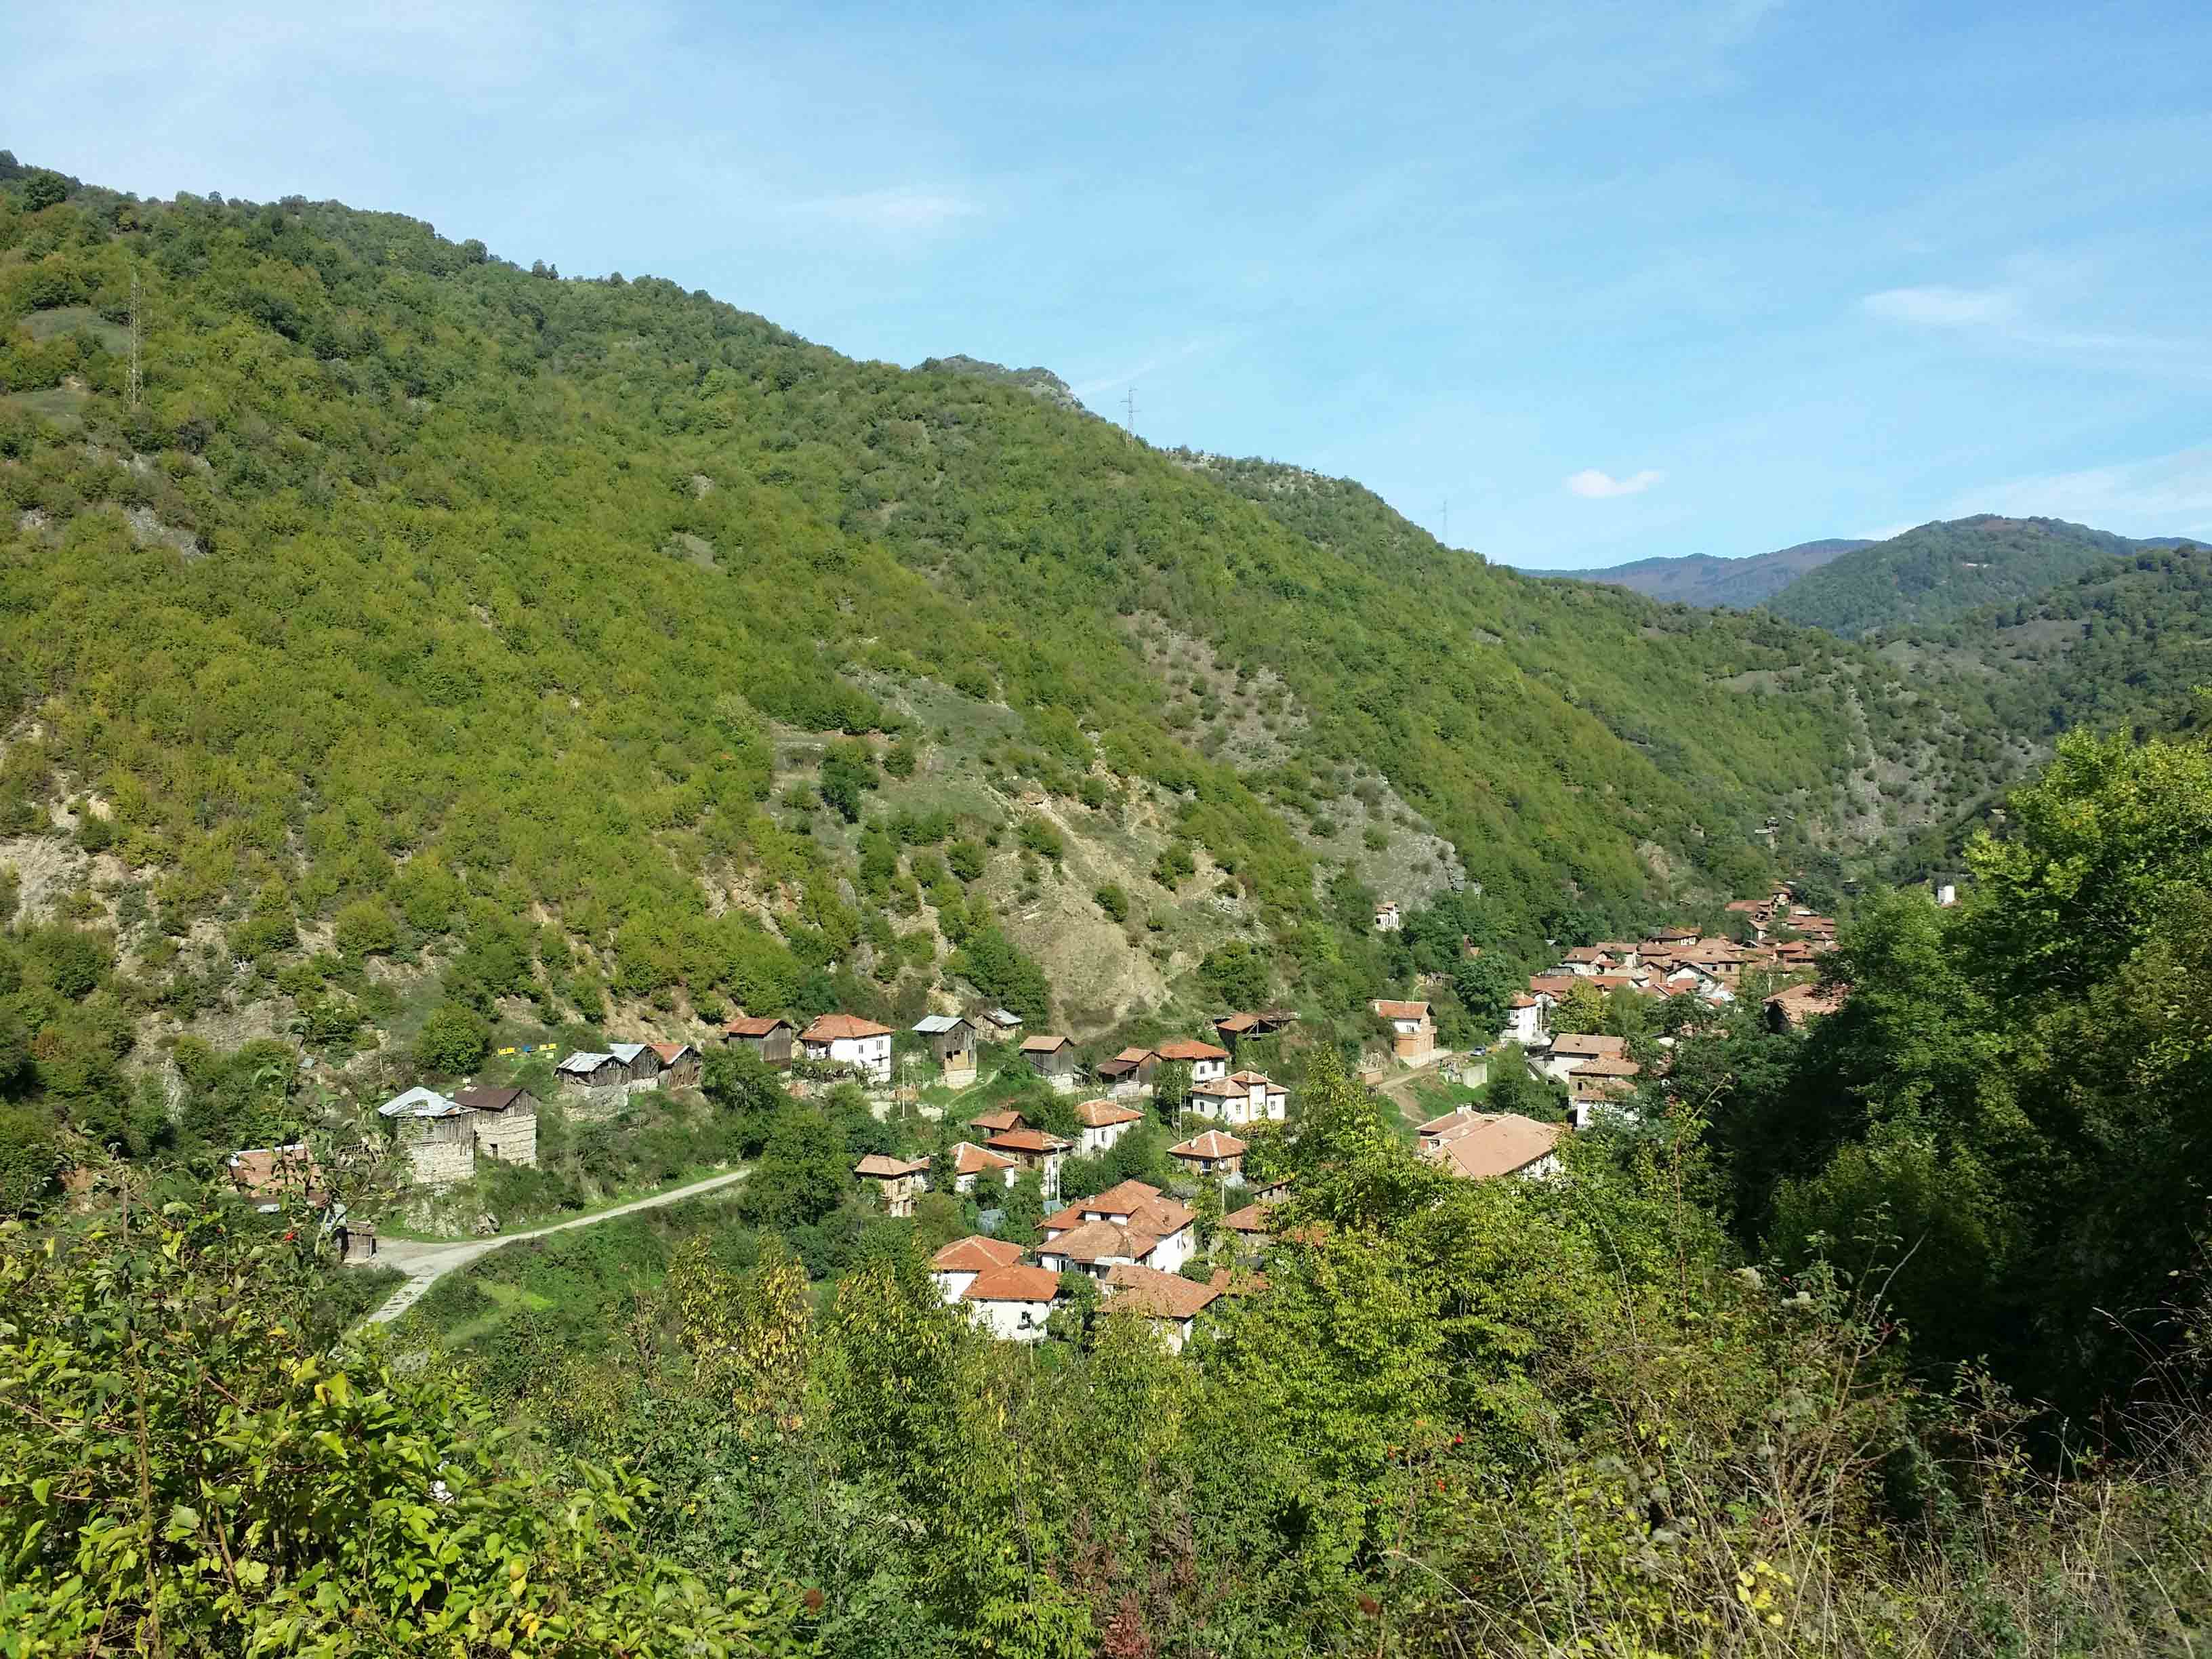 Pirin village overview